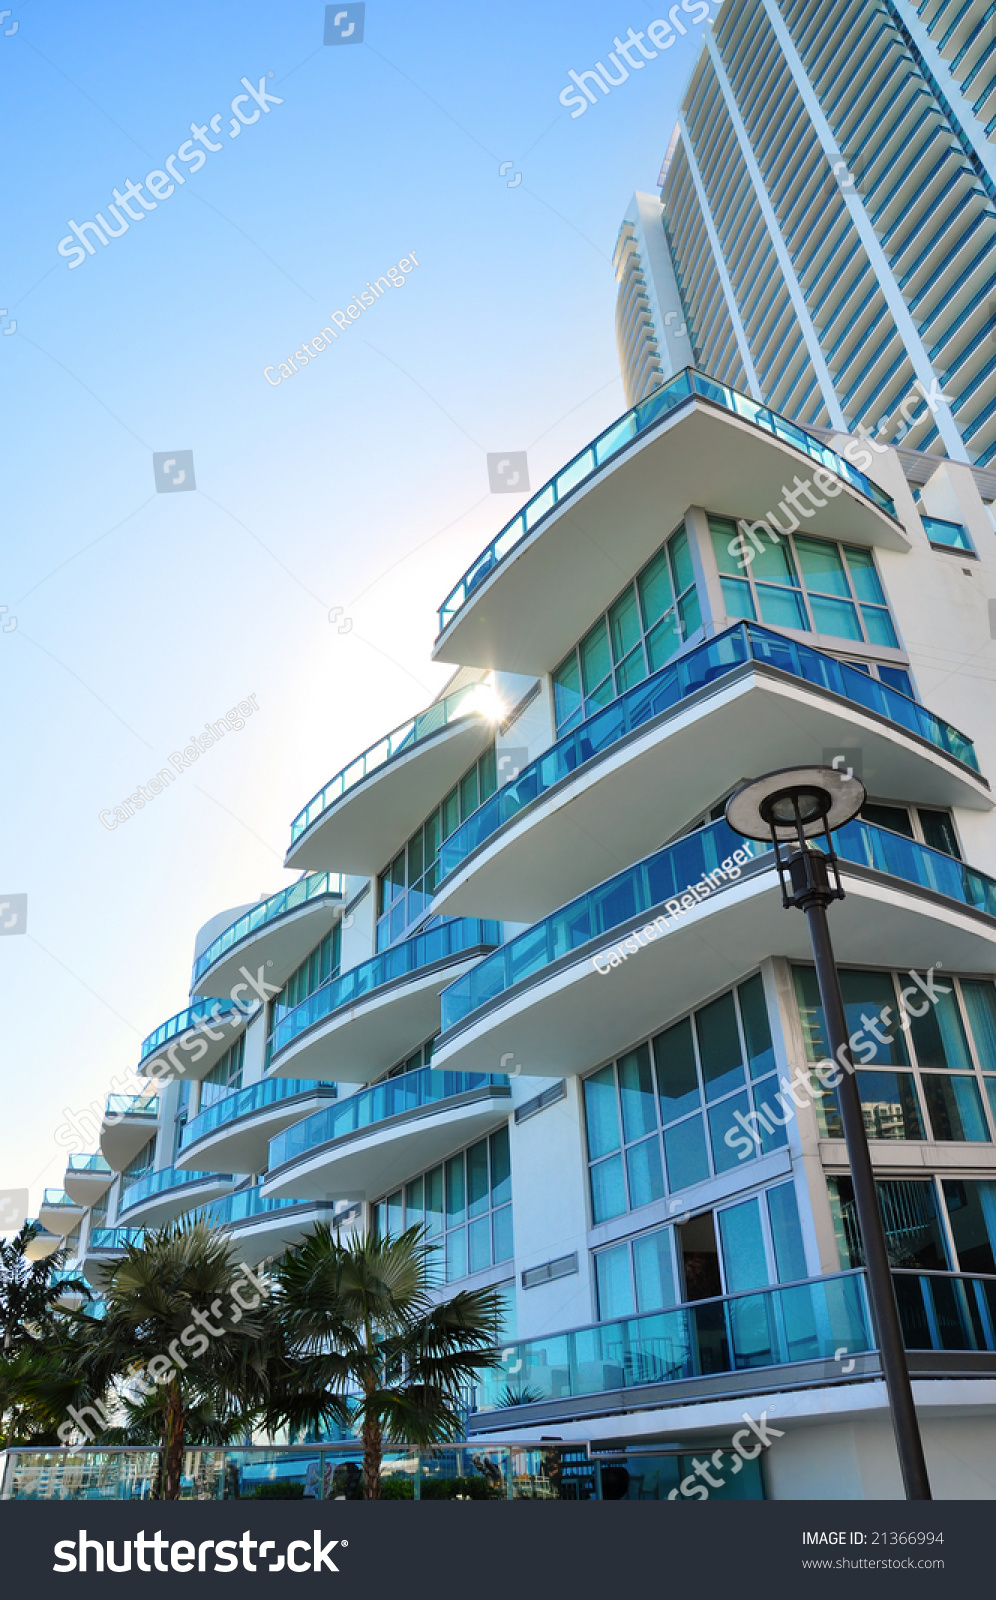 Luxurious Apartment Building In Nyc Marries Industrial: Luxurious Apartment Building In Florida Stock Photo